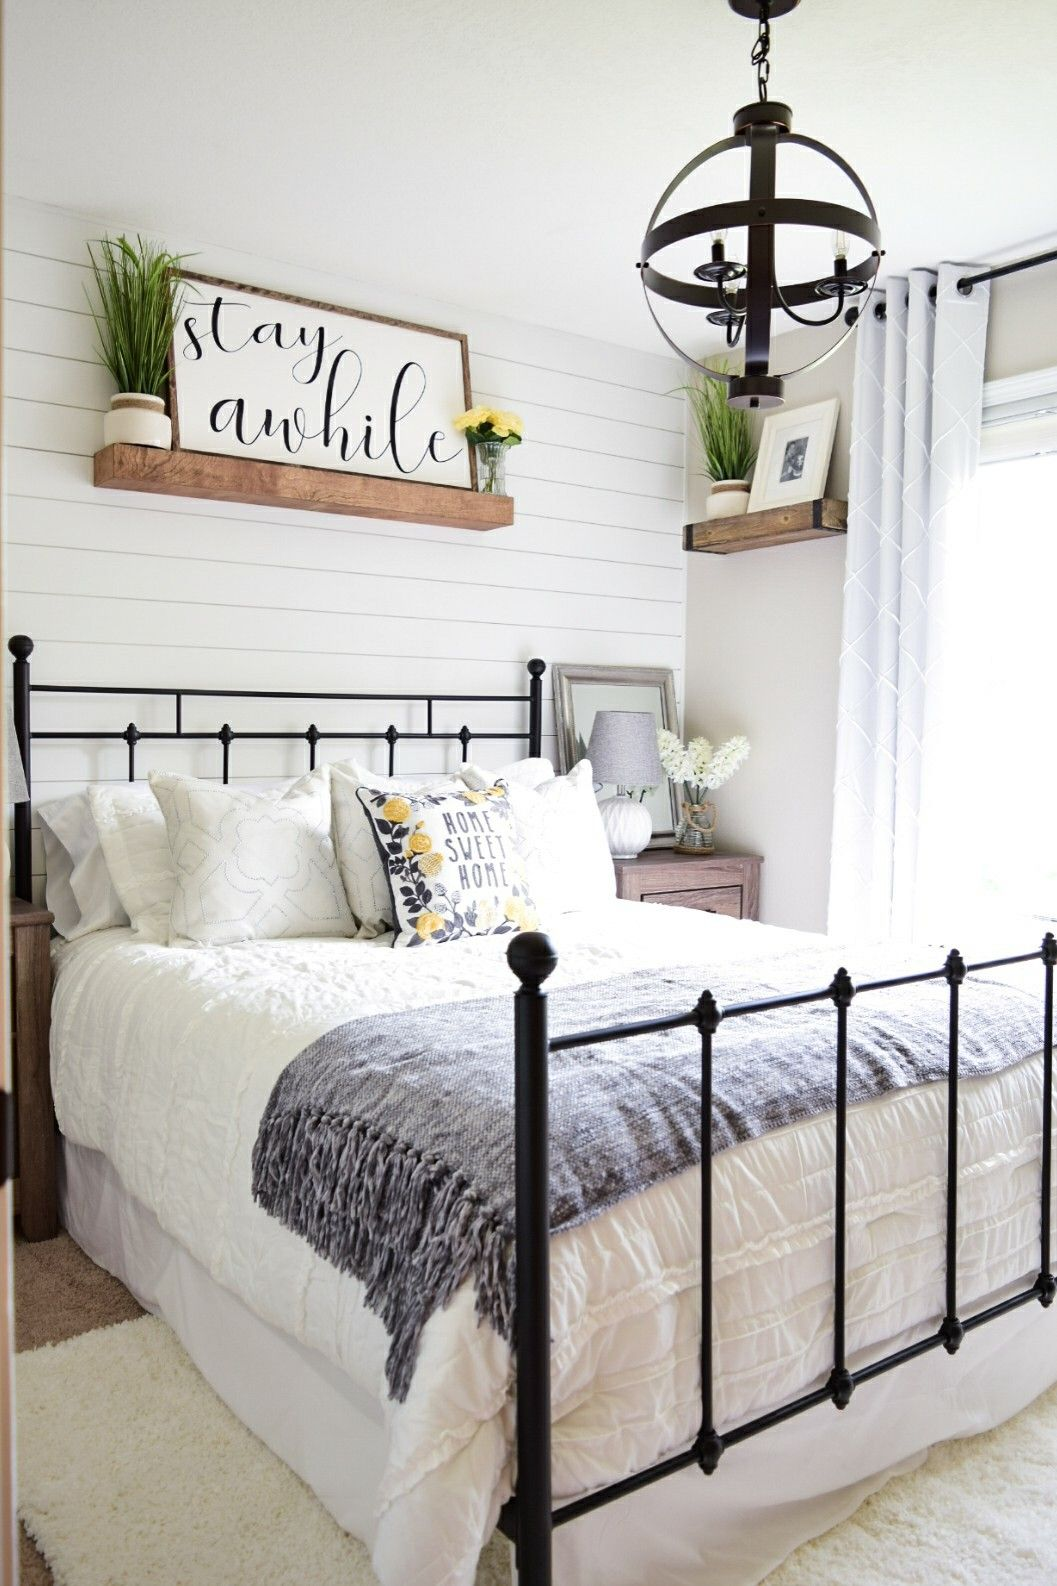 Cozy Modern Farmhouse Guest Bedroom Check out more at on ... on farmhouse bedroom with wood bed, farmhouse bedroom paint, farmhouse master bedroom, farmhouse furniture and rooms and ideas, farmhouse fixer upper bedroom, old farmhouse decorating ideas, farmhouse powder room decorating ideas, farmhouse living room, farmhouse bedroom window treatments, farmhouse bedroom style, rustic farmhouse decorating ideas, rustic farmhouse bedroom ideas, farmhouse bathroom ideas, rustic country decorating ideas, modern farmhouse decorating ideas, farmhouse bedroom furniture, primitive country decorating ideas, country farmhouse bedroom ideas, farmhouse decor, farmhouse bedroom sets ideas,